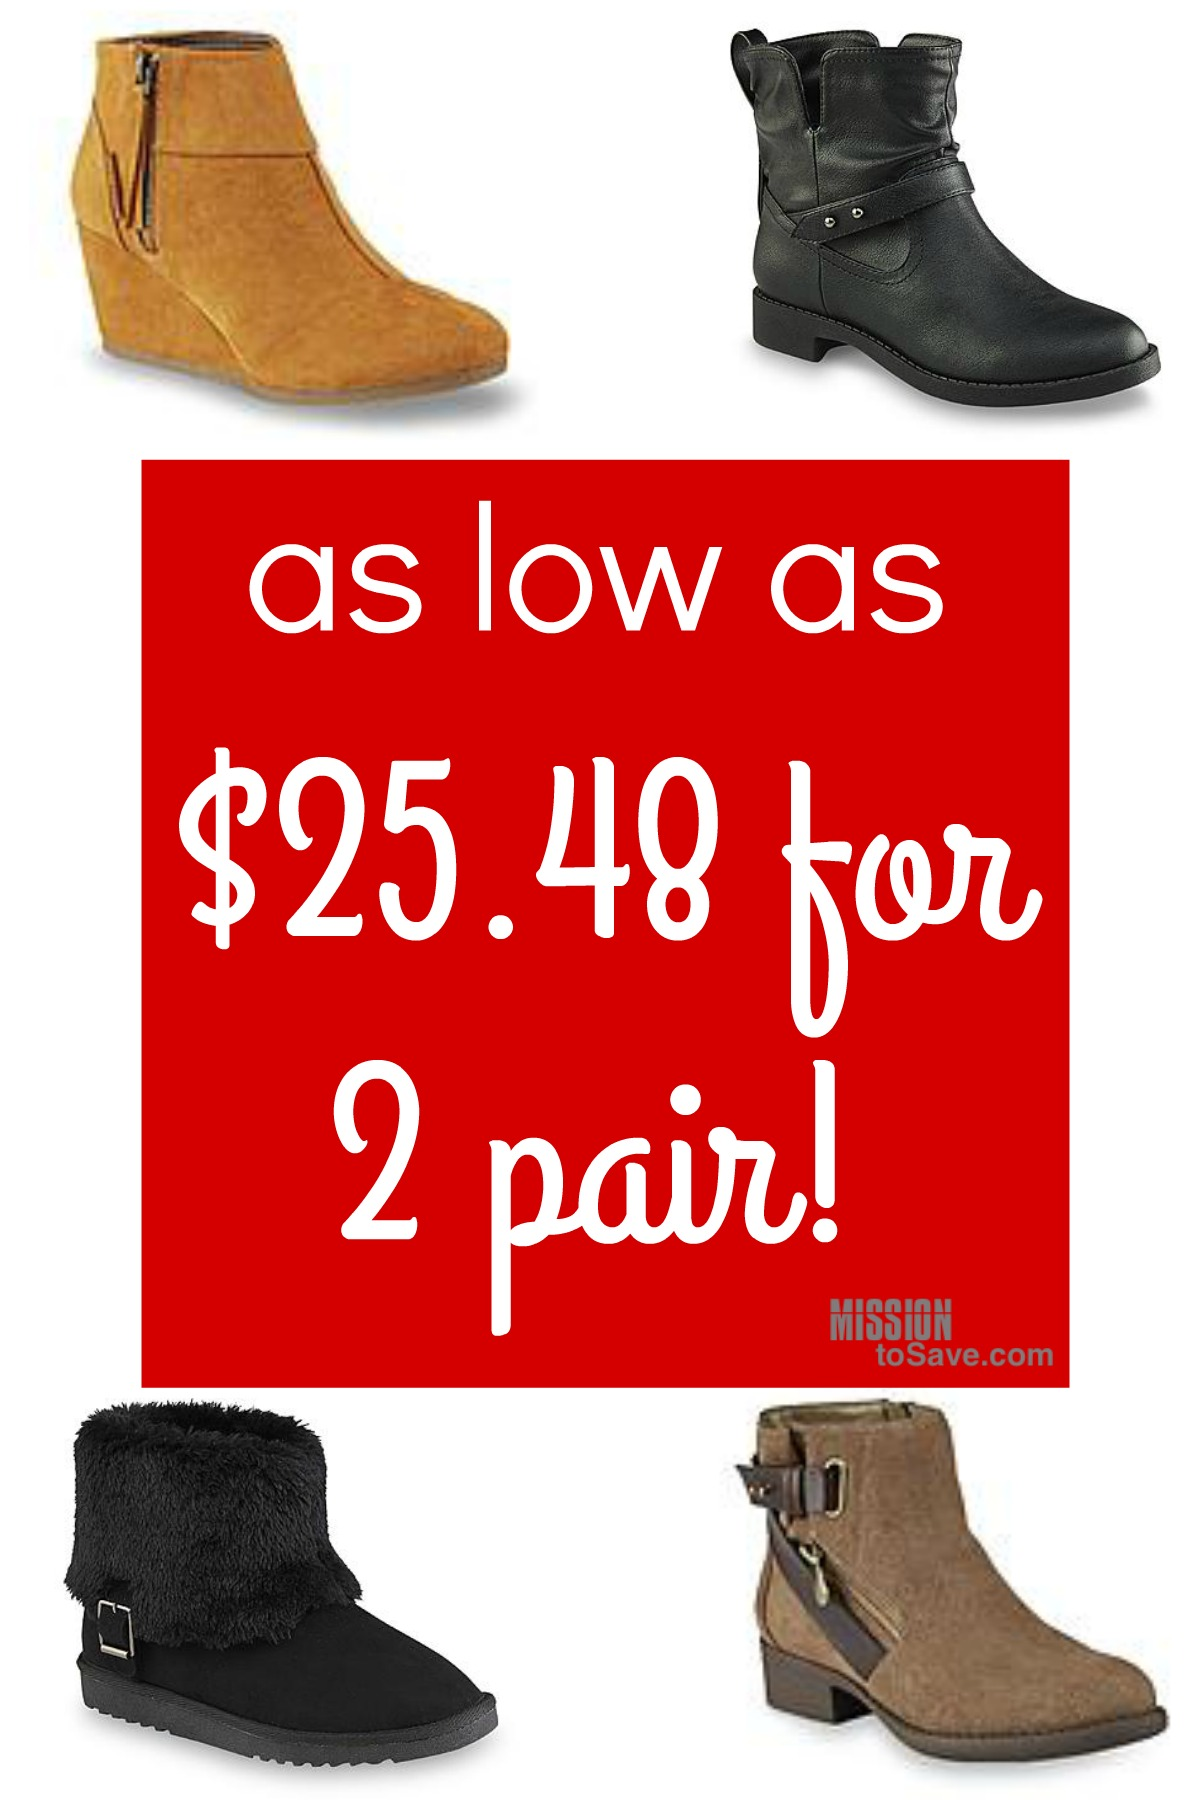 Kmart BOGO f Shoes Sale As Low as $25 48 for 2